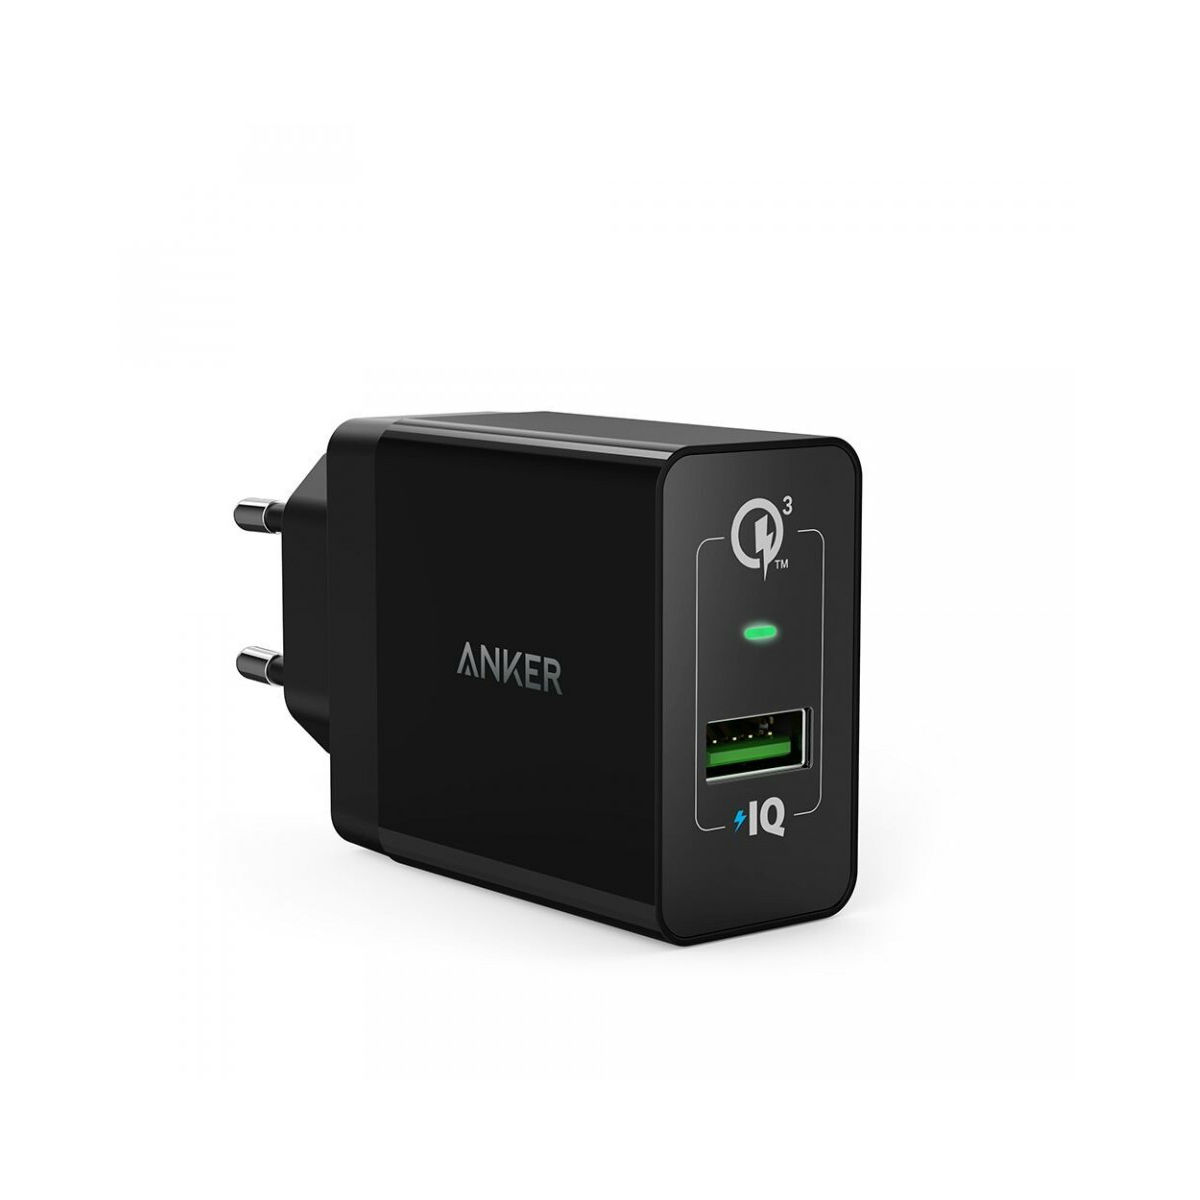 Anker PowerPort+ 1 Quick Charge 3.0 (black)